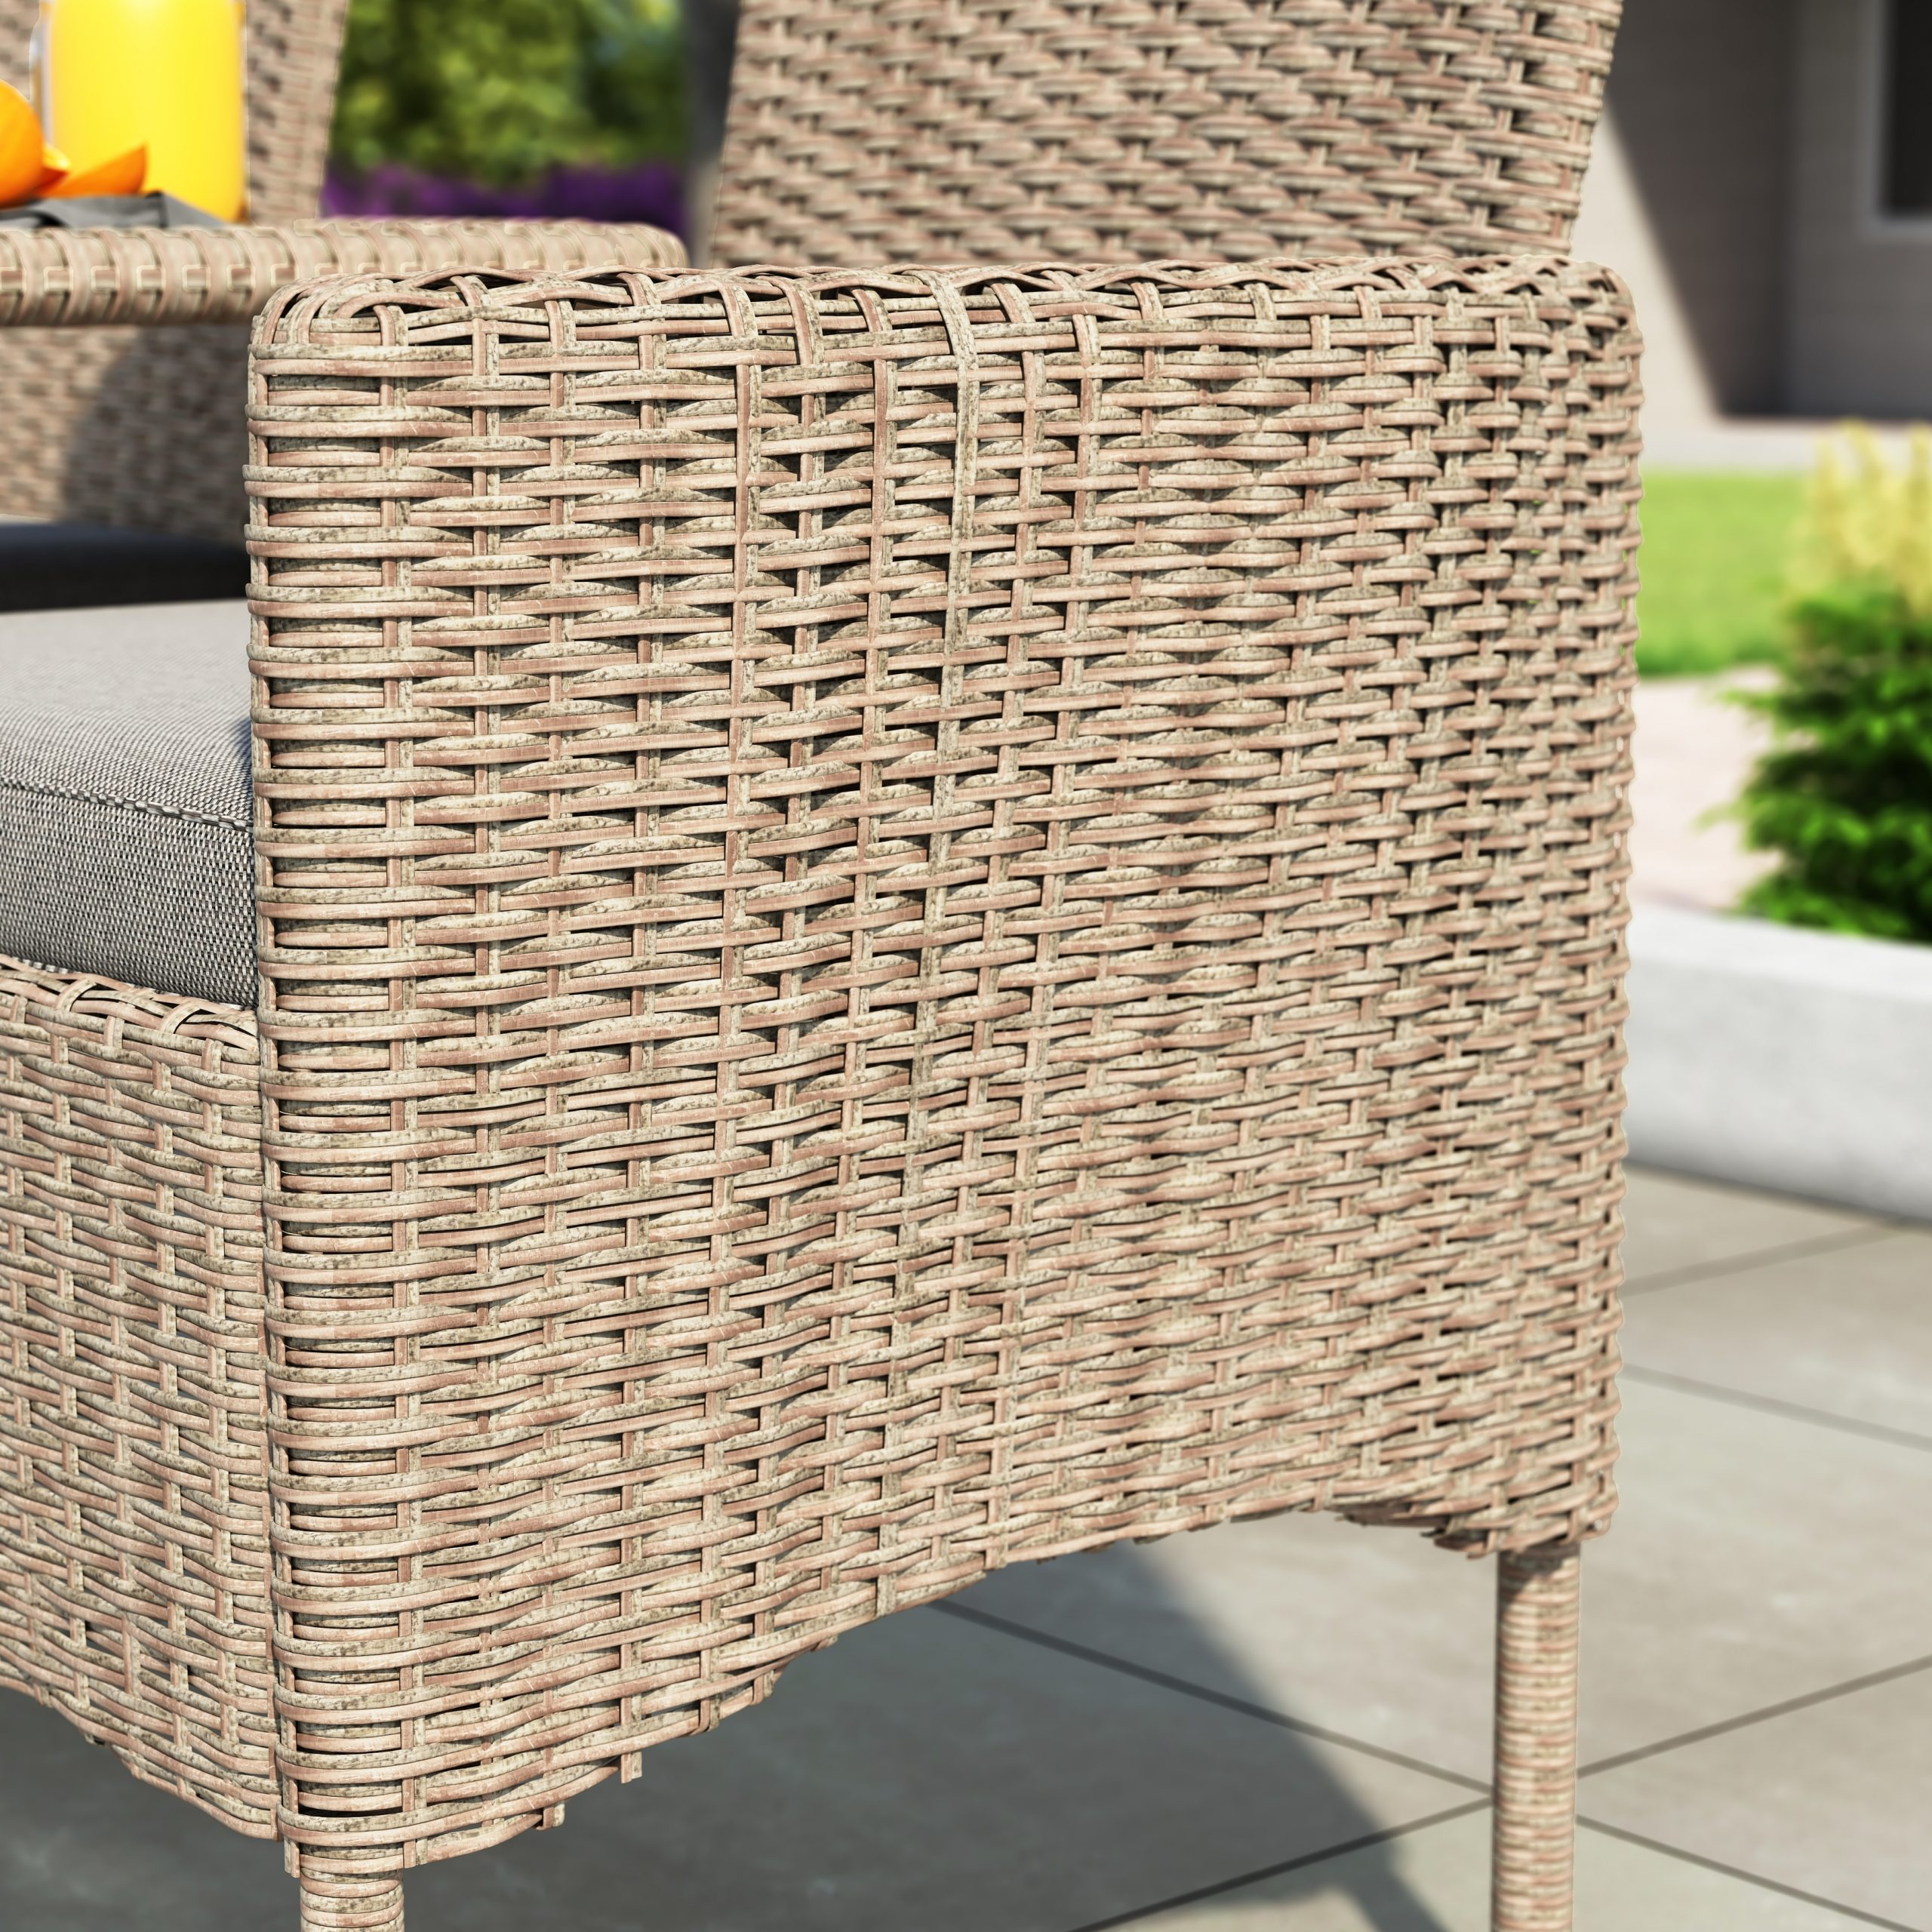 Wicker Tete A Tete Benches For Widely Used Corvus Armitage Outdoor Wicker Tete A Tete Bench (View 9 of 30)